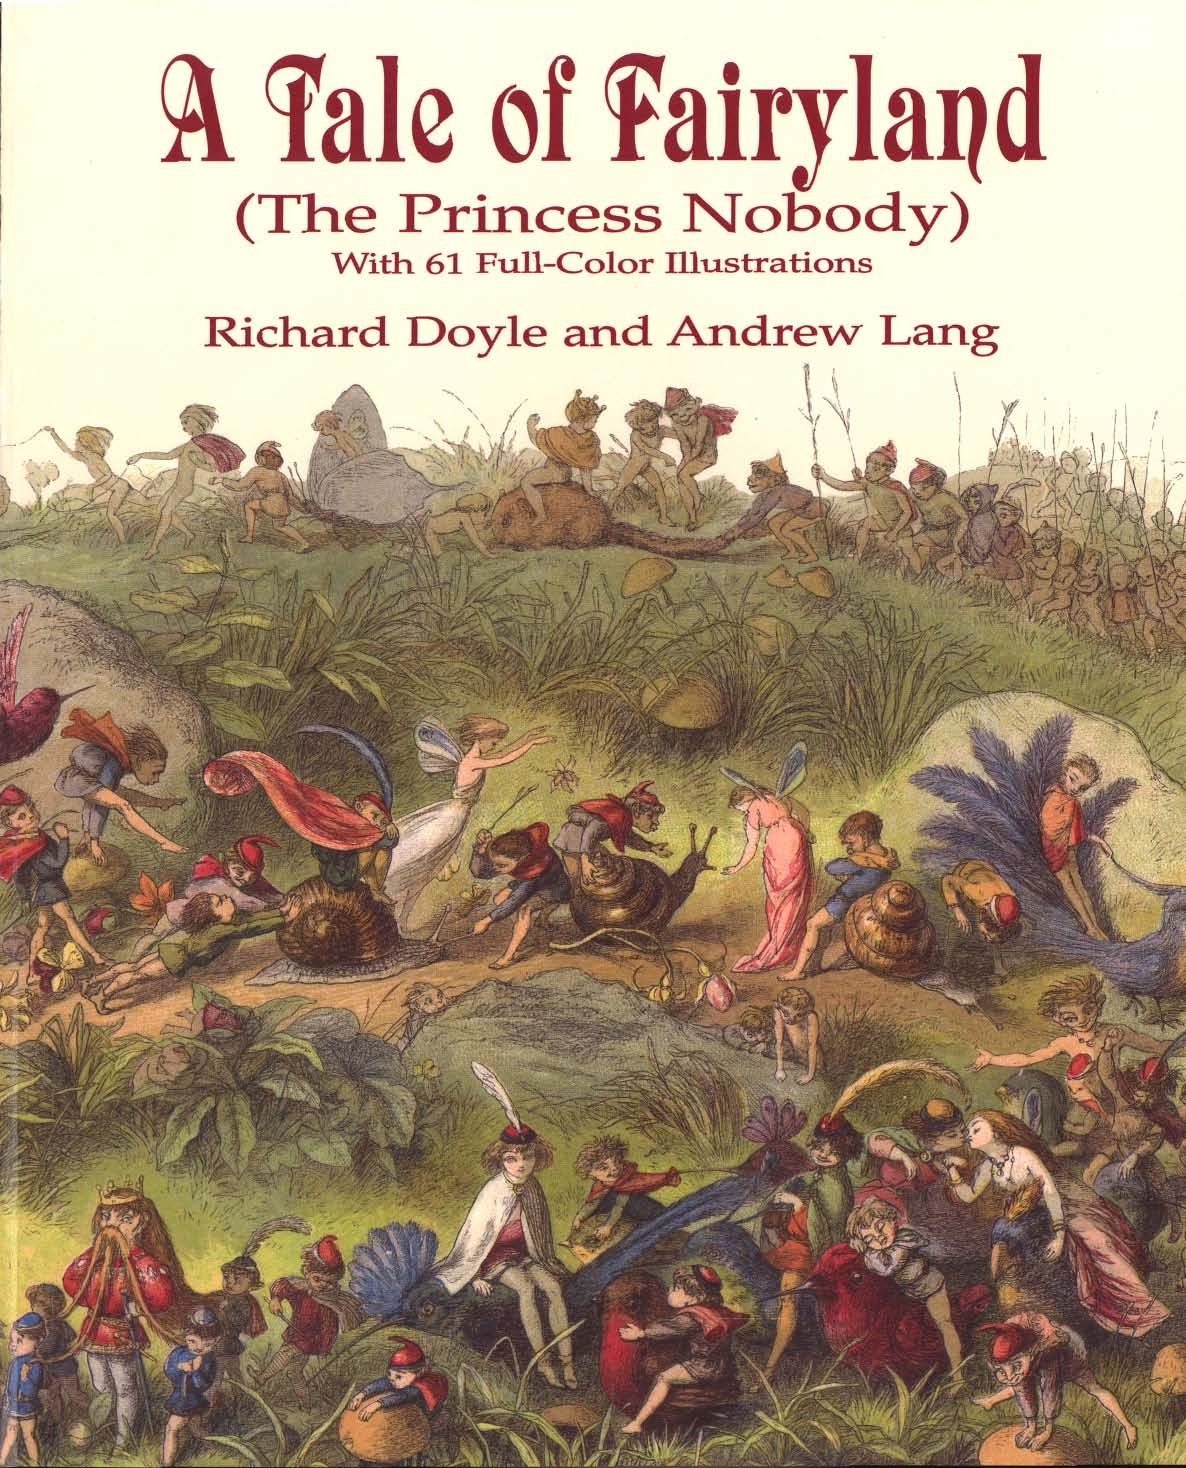 A Tale of Fairyland (the Princess Nobody): With 61 Full-Color Illustrations